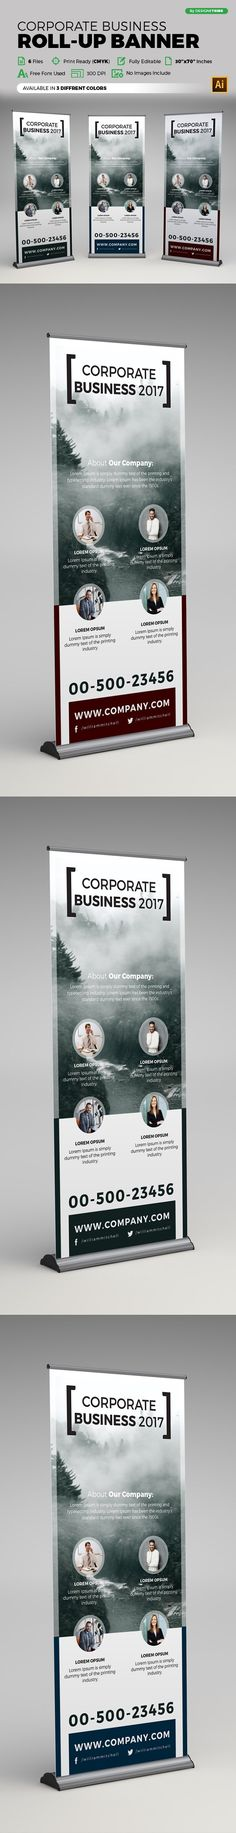 Corporate Roll Up Banner by Design'sTRIBE on Creative Market - Graphic Vital Corporate Branding, Corporate Business, Booth Design, Layout Design, Rollup Banner Design, Roll Up Design, Letterhead Template, Cool Business Cards, Banner Template